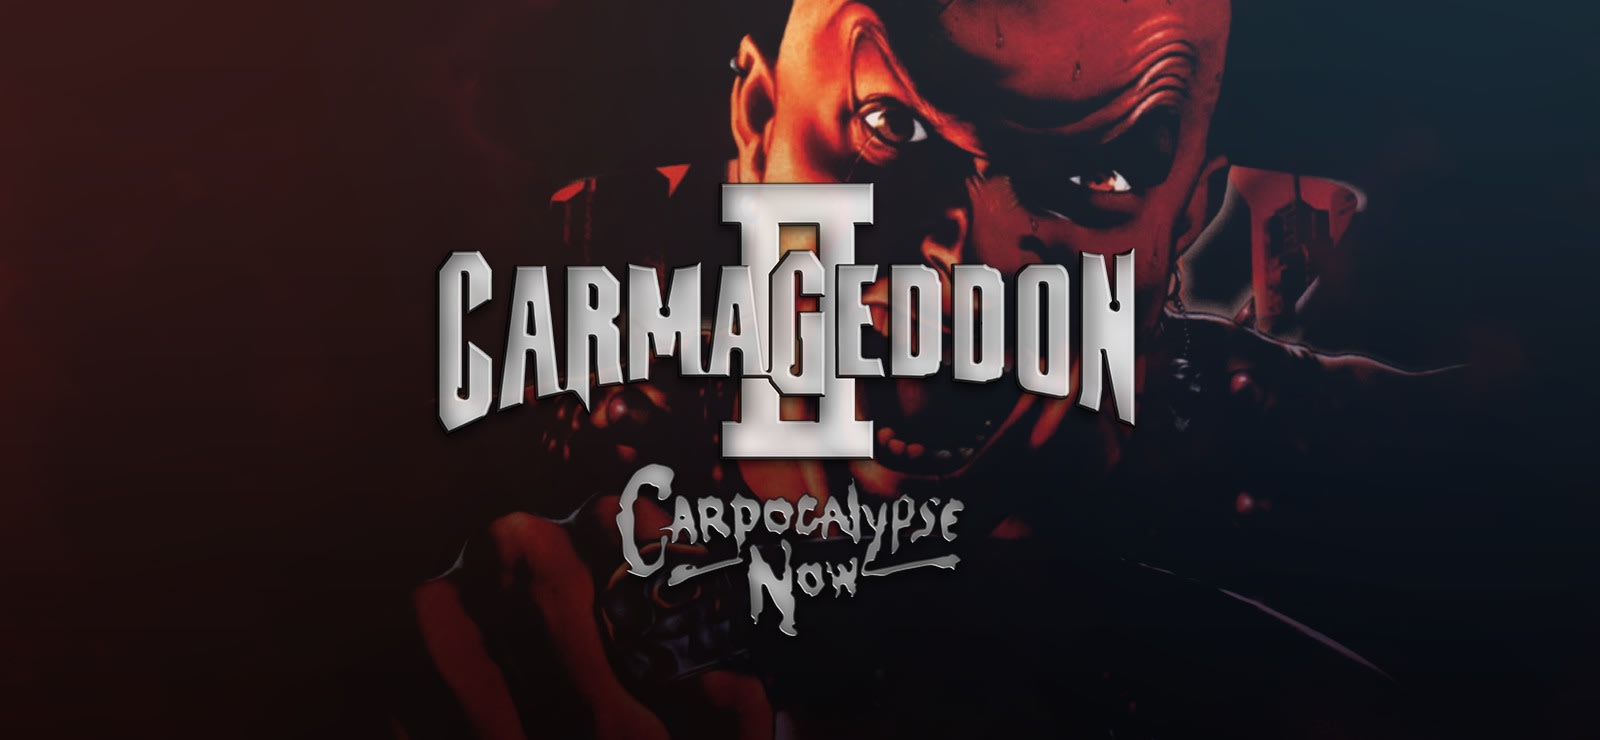 Carmageddon 2: Carpocalypse Now varies-with-device